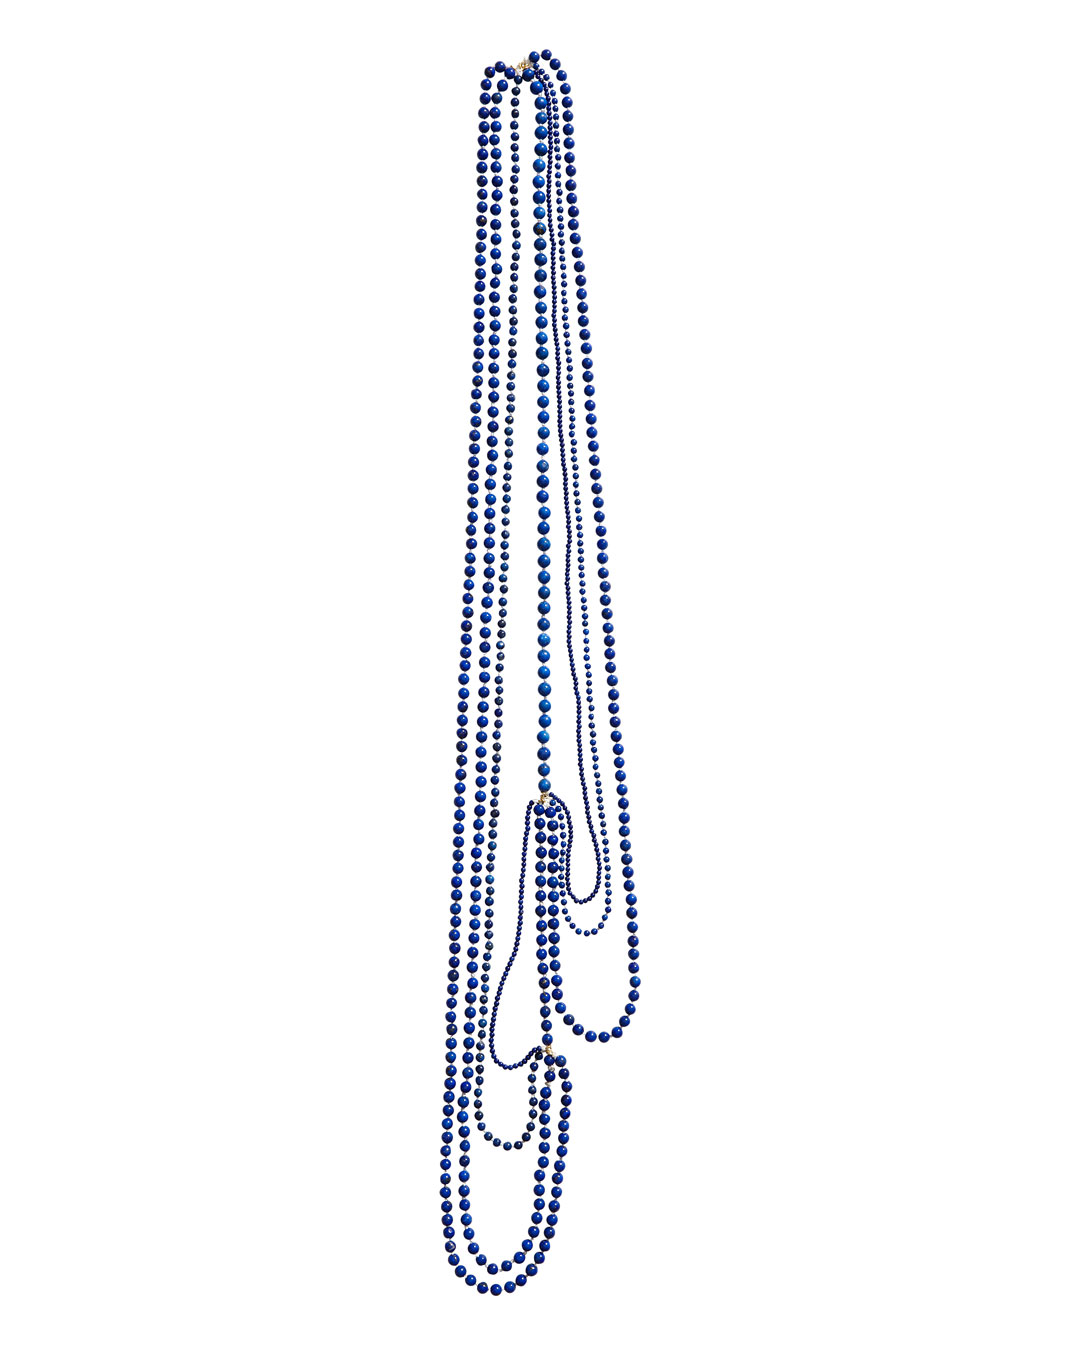 Annelies Planteijdt, Mooie stad - Blauwe water (Beautiful City - Blue Water), 2020, necklace; lapis lazuli, 18ct gold, yarn, 900 mm, €3950